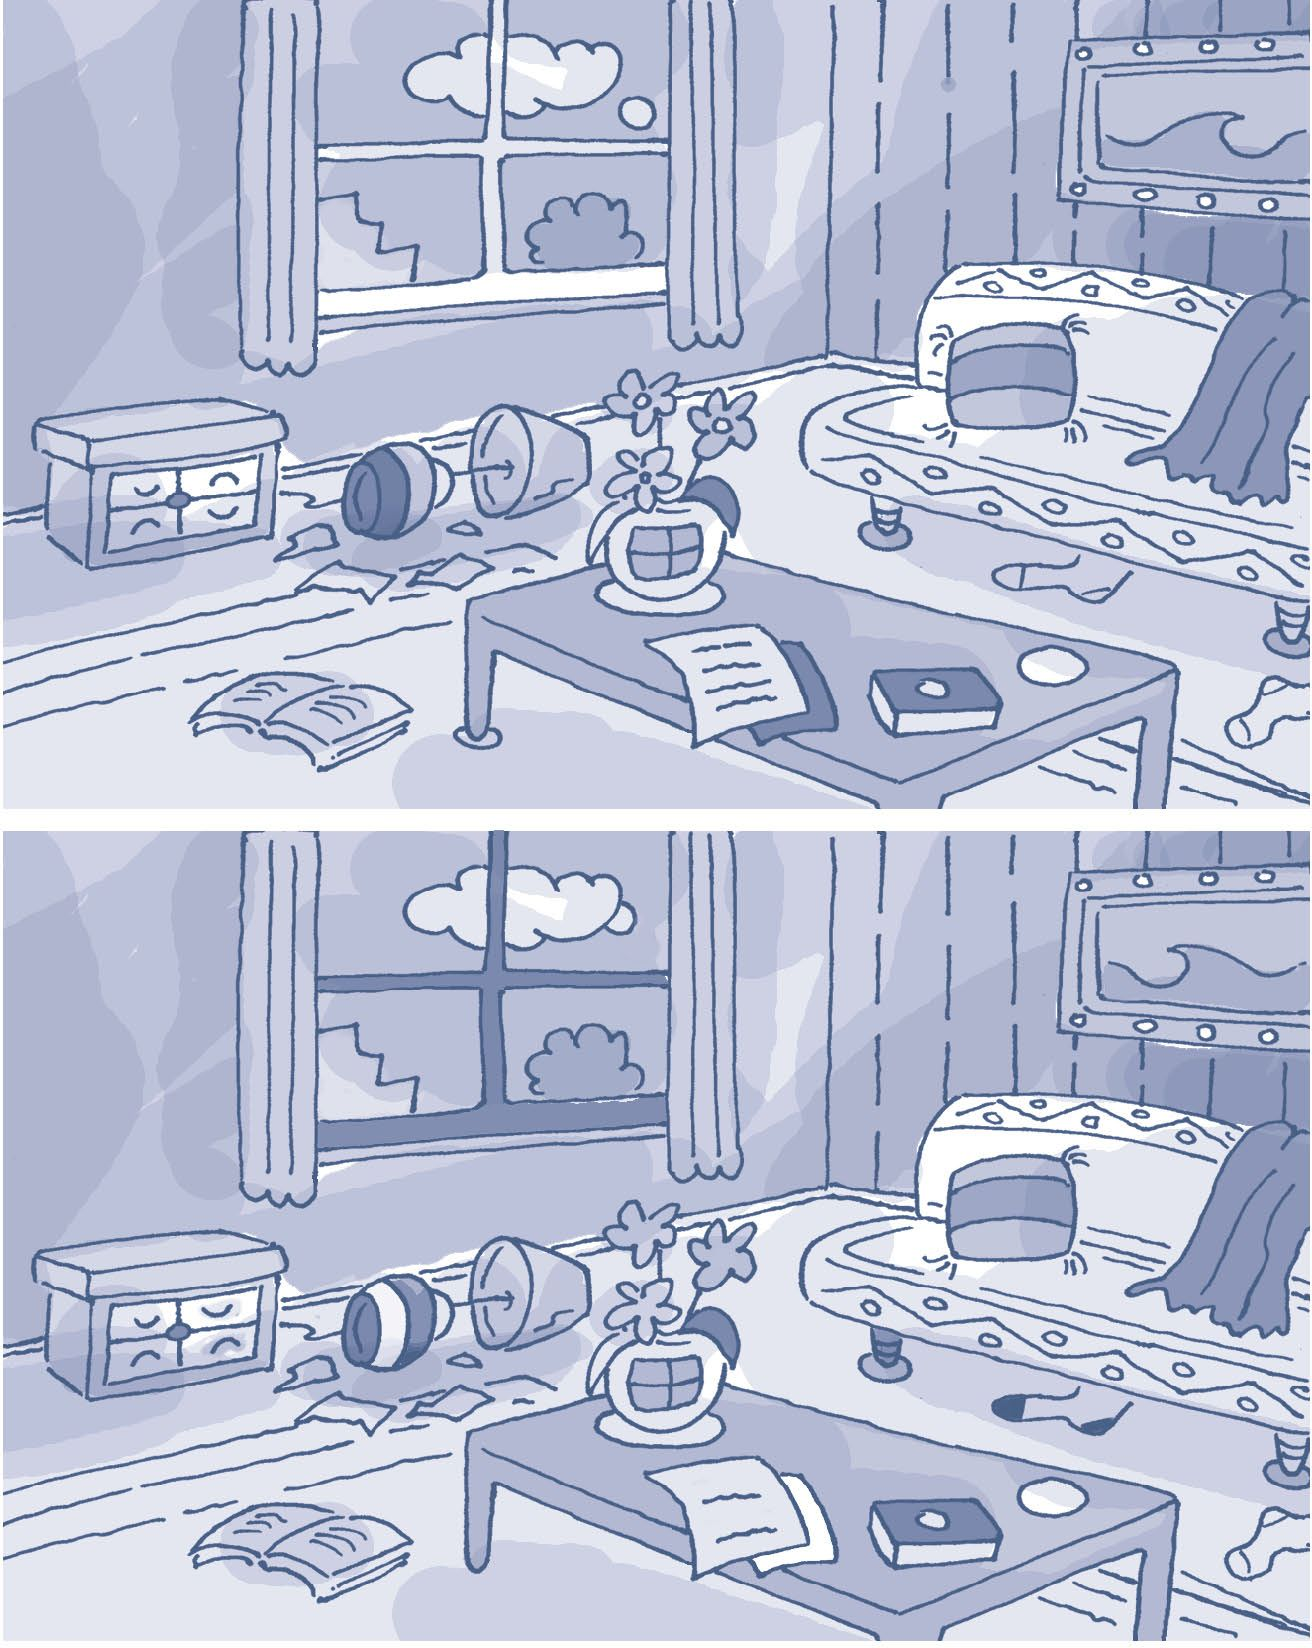 Scenes of the Crime! - Spy Puzzles and Activities for Kids